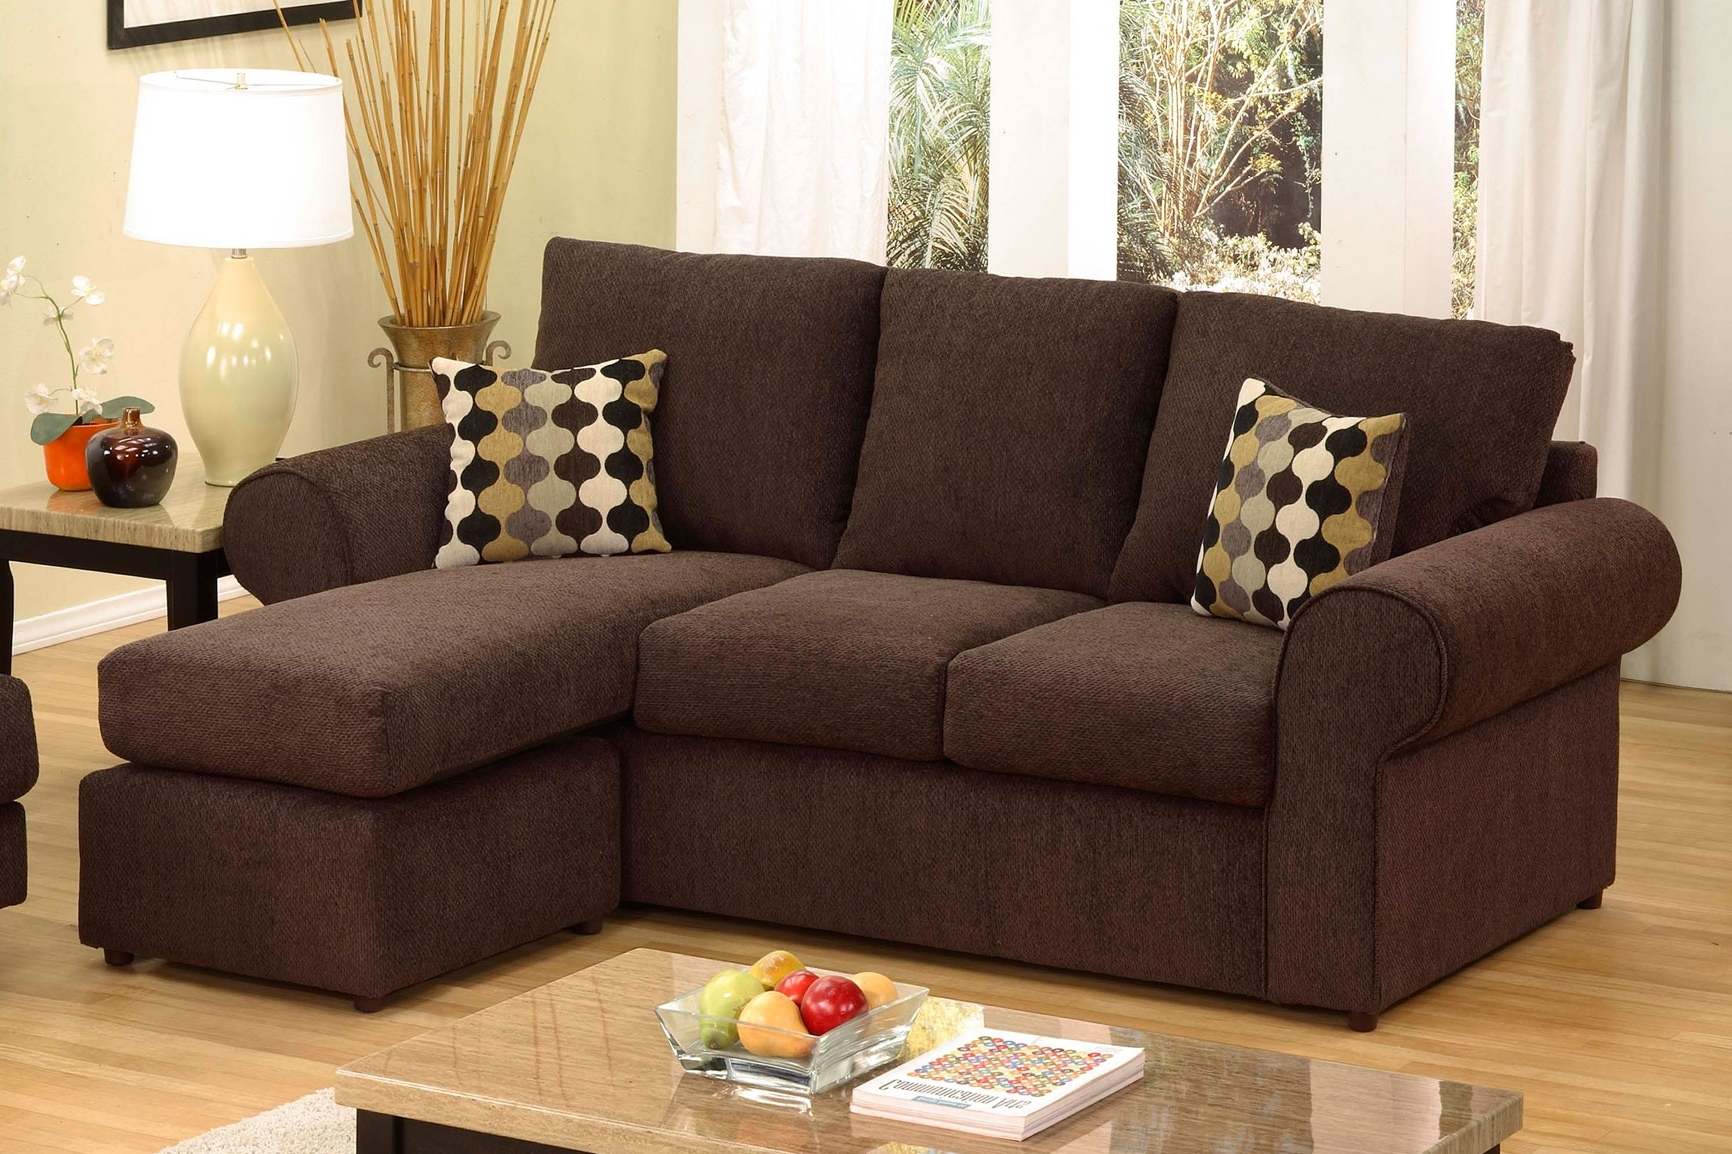 Widely Used Tallahassee Sectional Sofas In Furniture: Harbor Freight Furniture (View 20 of 20)